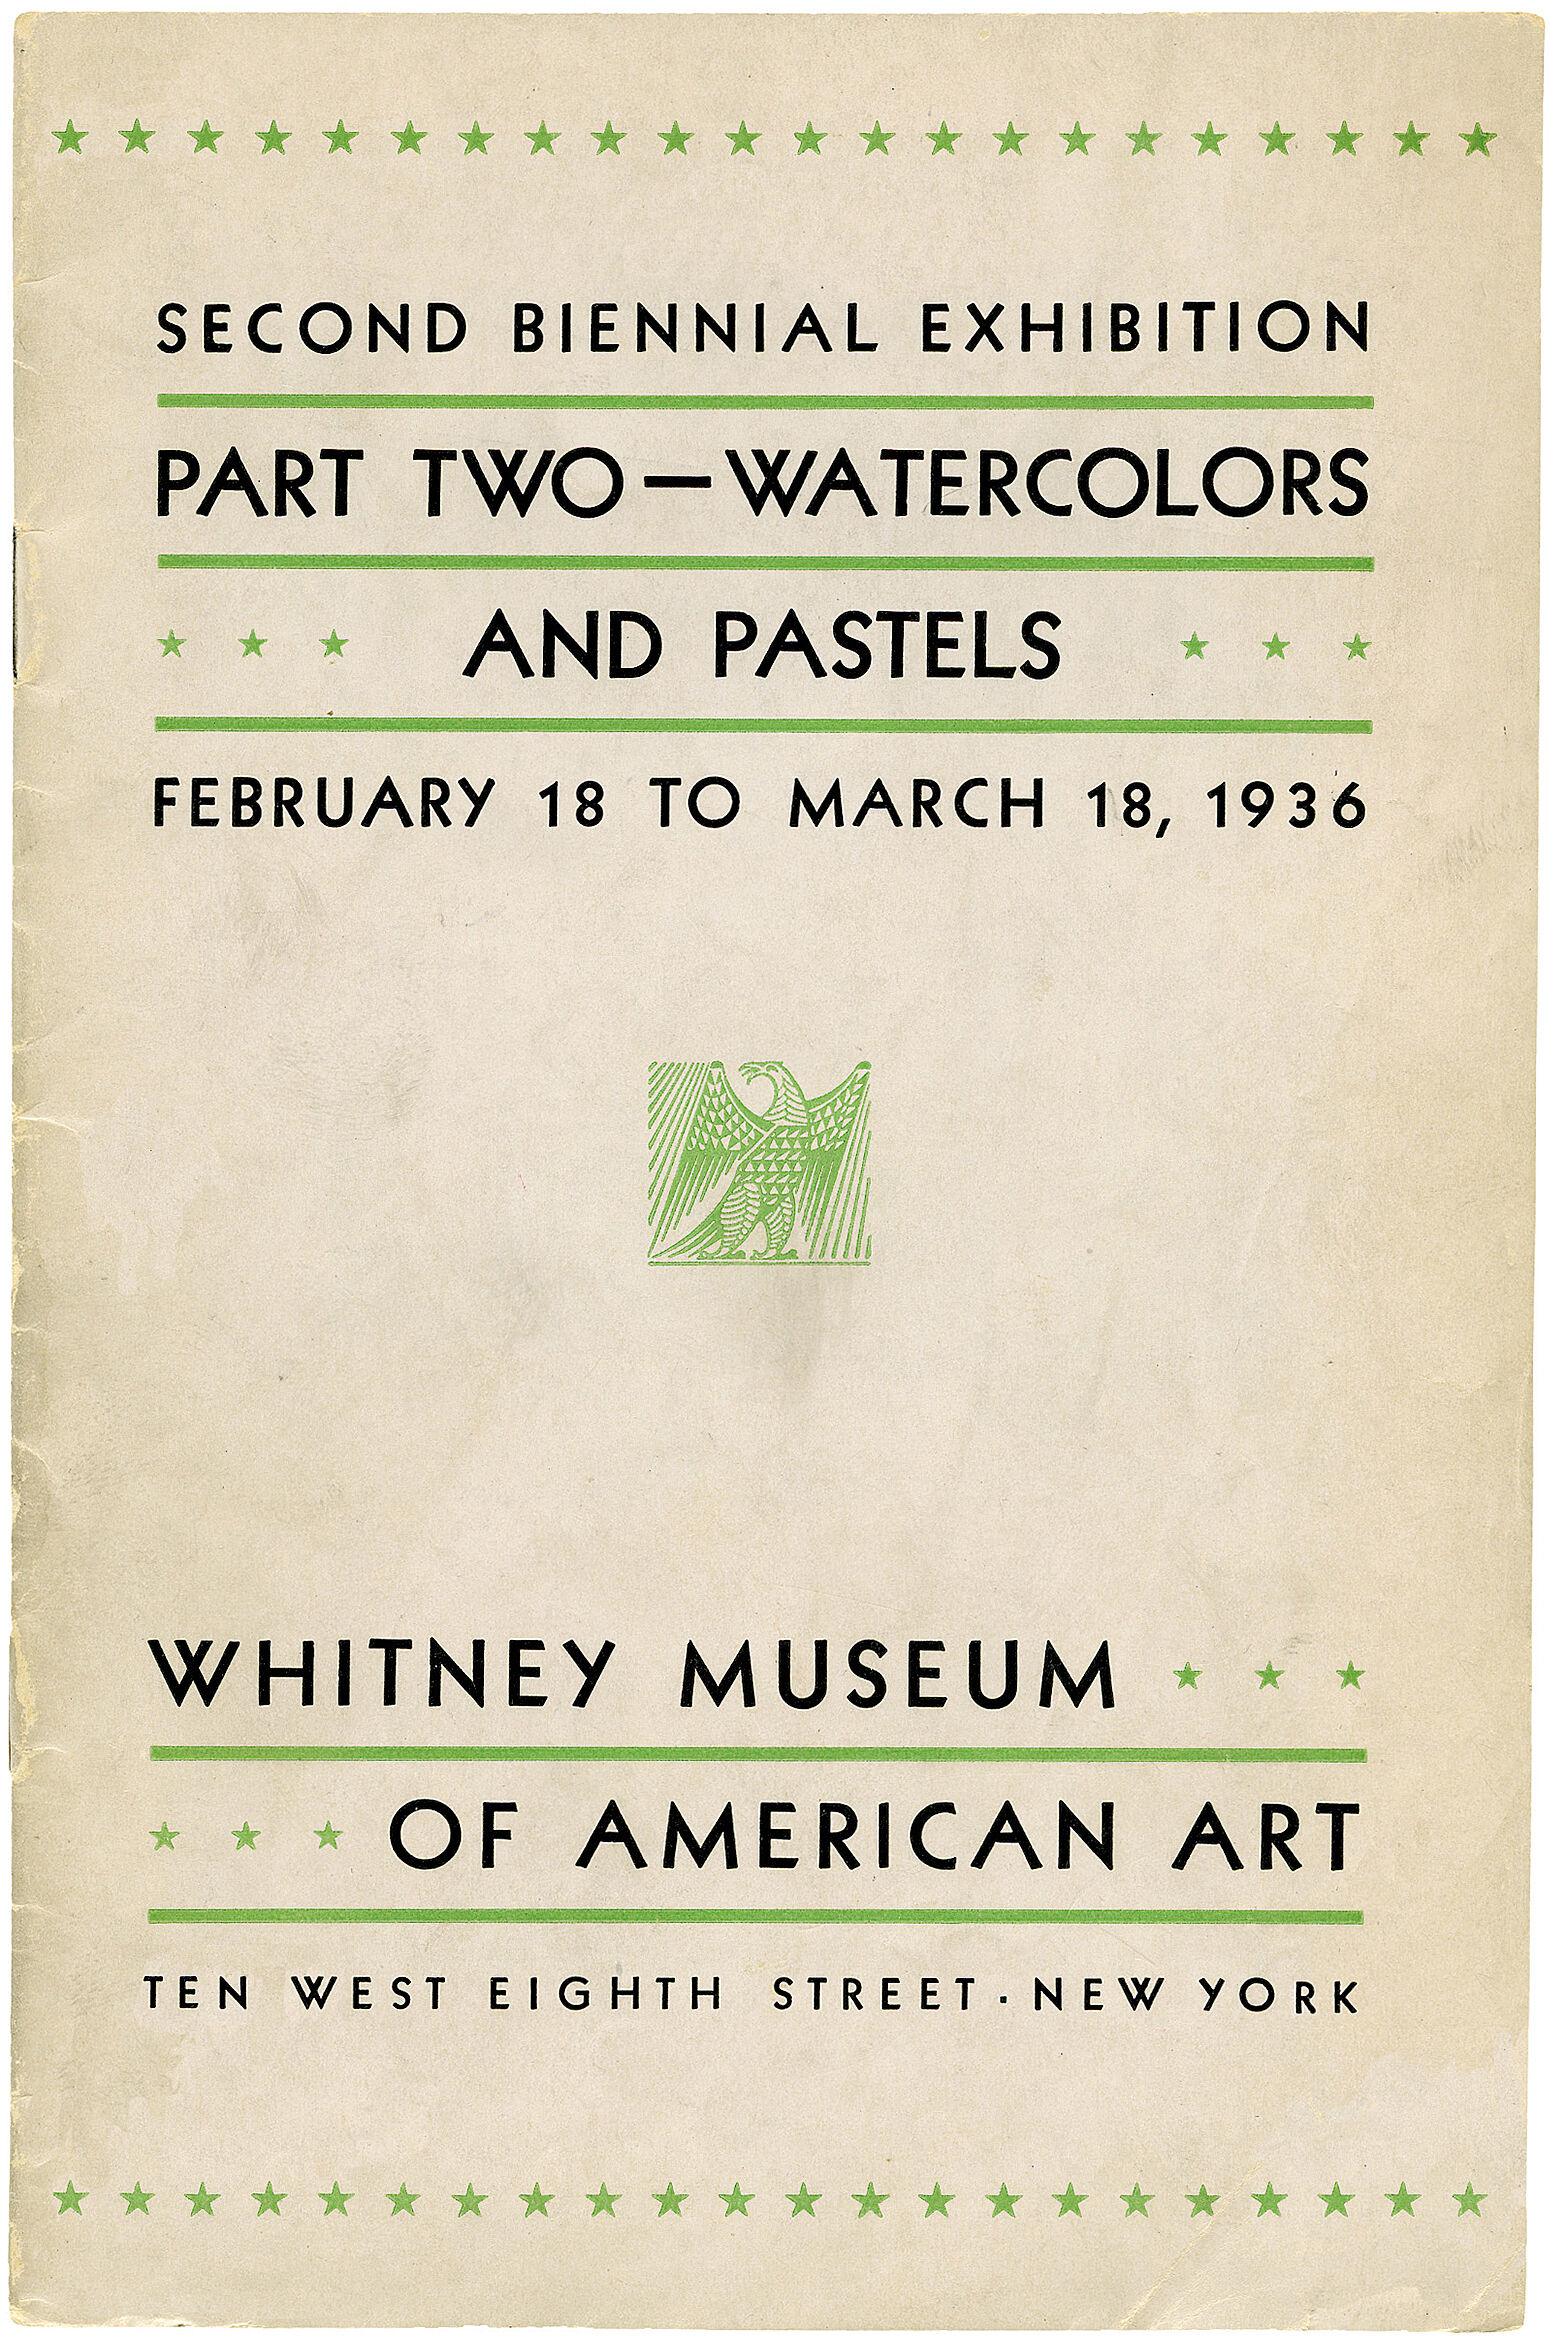 Catalogue cover for Second Biennial Exhibition Part Two—Watercolors, and Pastels